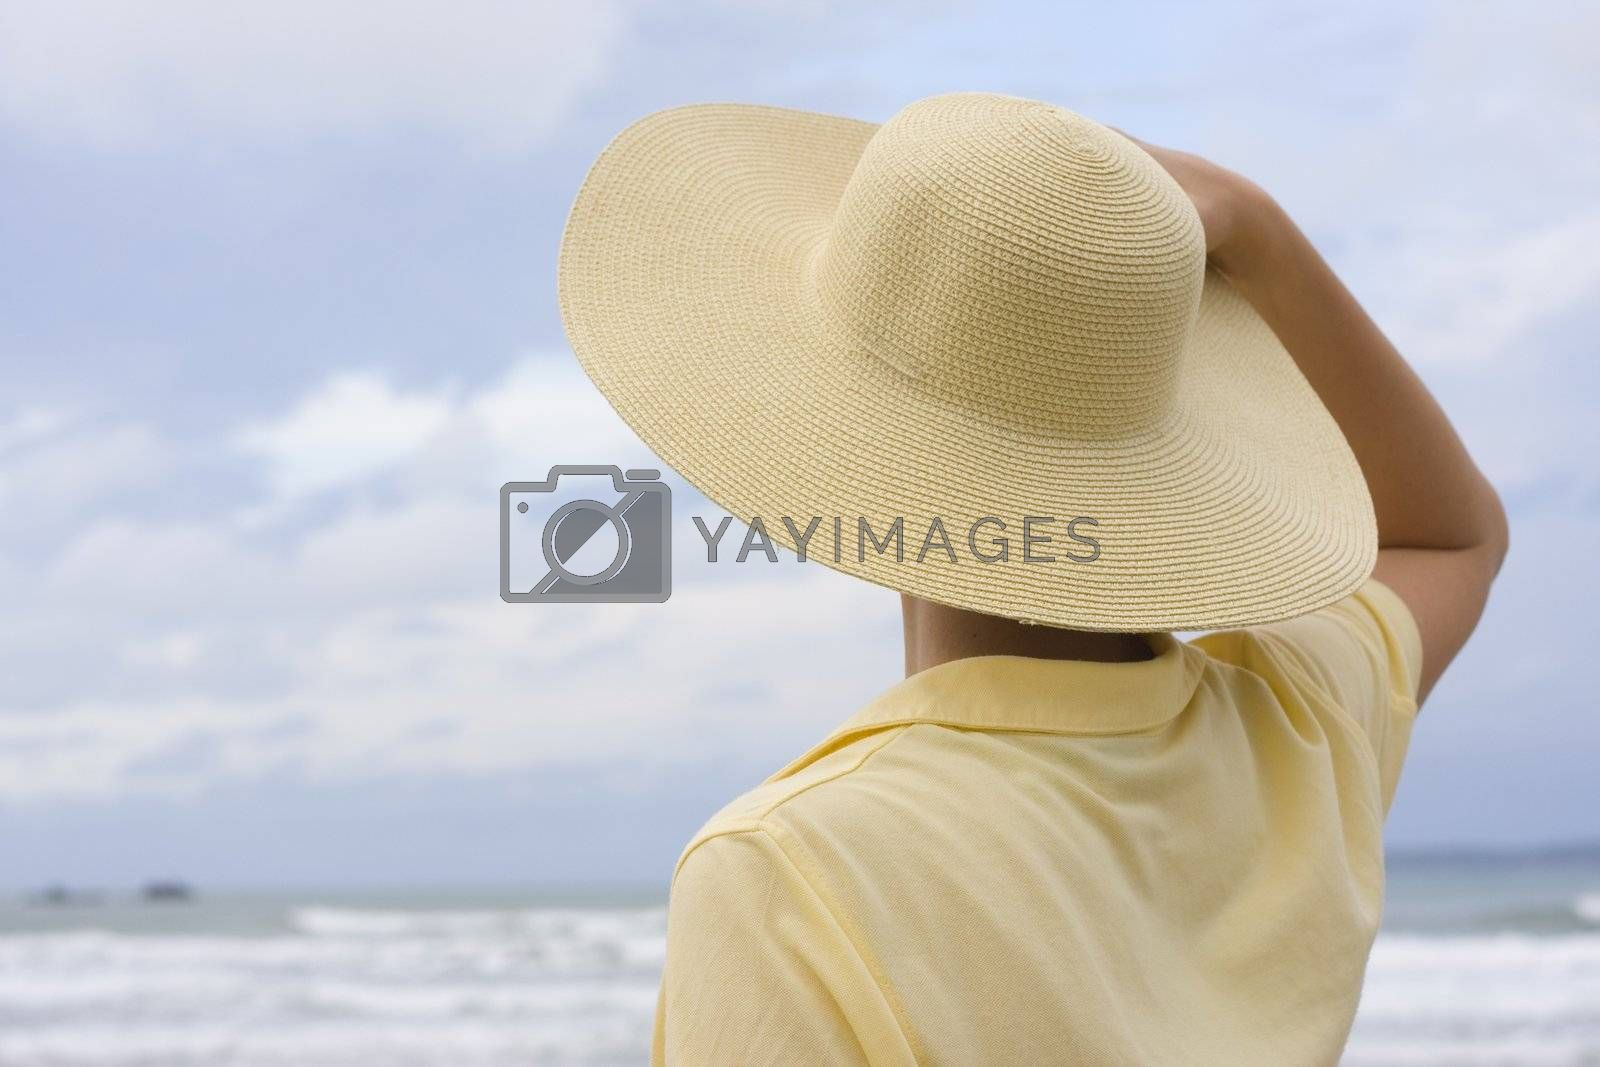 Royalty free image of Woman with hat on a beach by ArtmannWitte